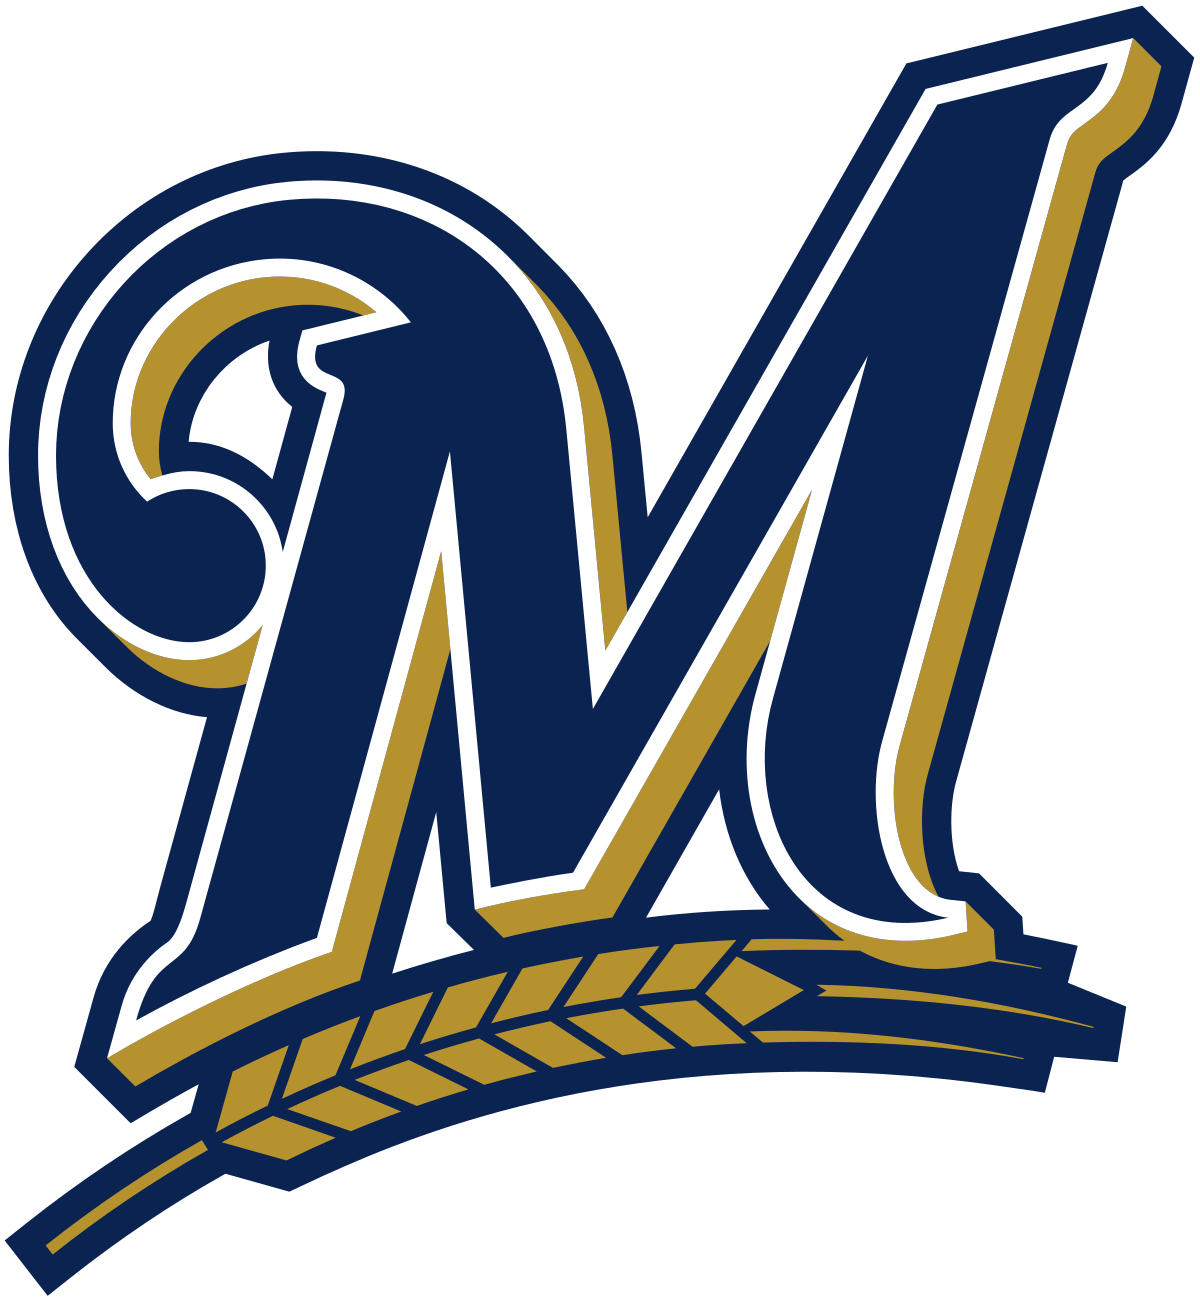 Milwaukee Brewers Logo Png Image Mlb Baseball Logo Brewer Logo Milwaukee Brewers